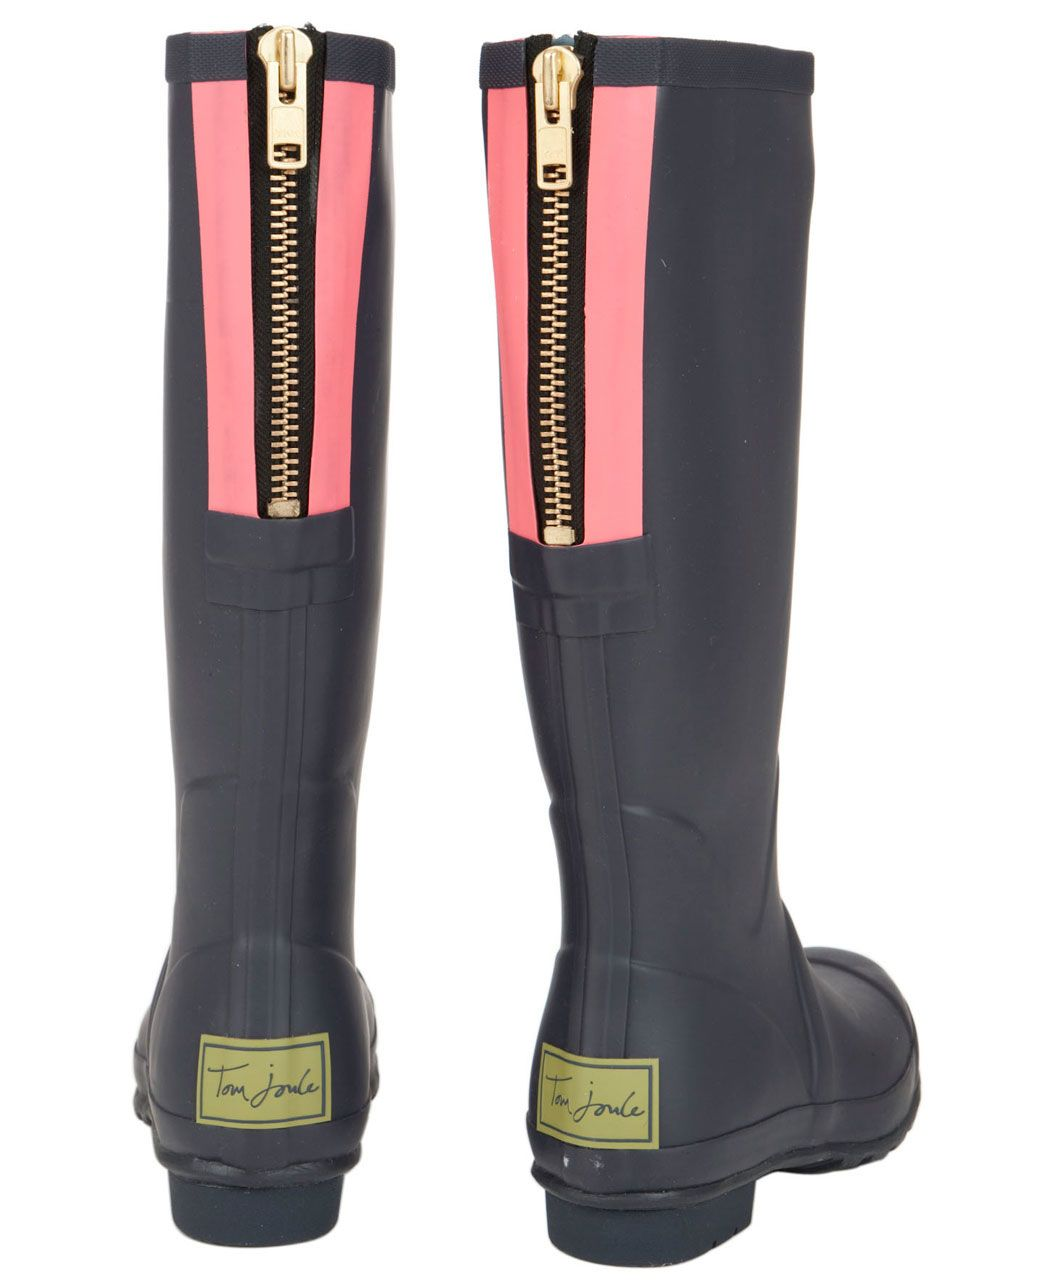 so cute -- RIBBLE Womens Premium Rain Boots | My Style | Pinterest ...